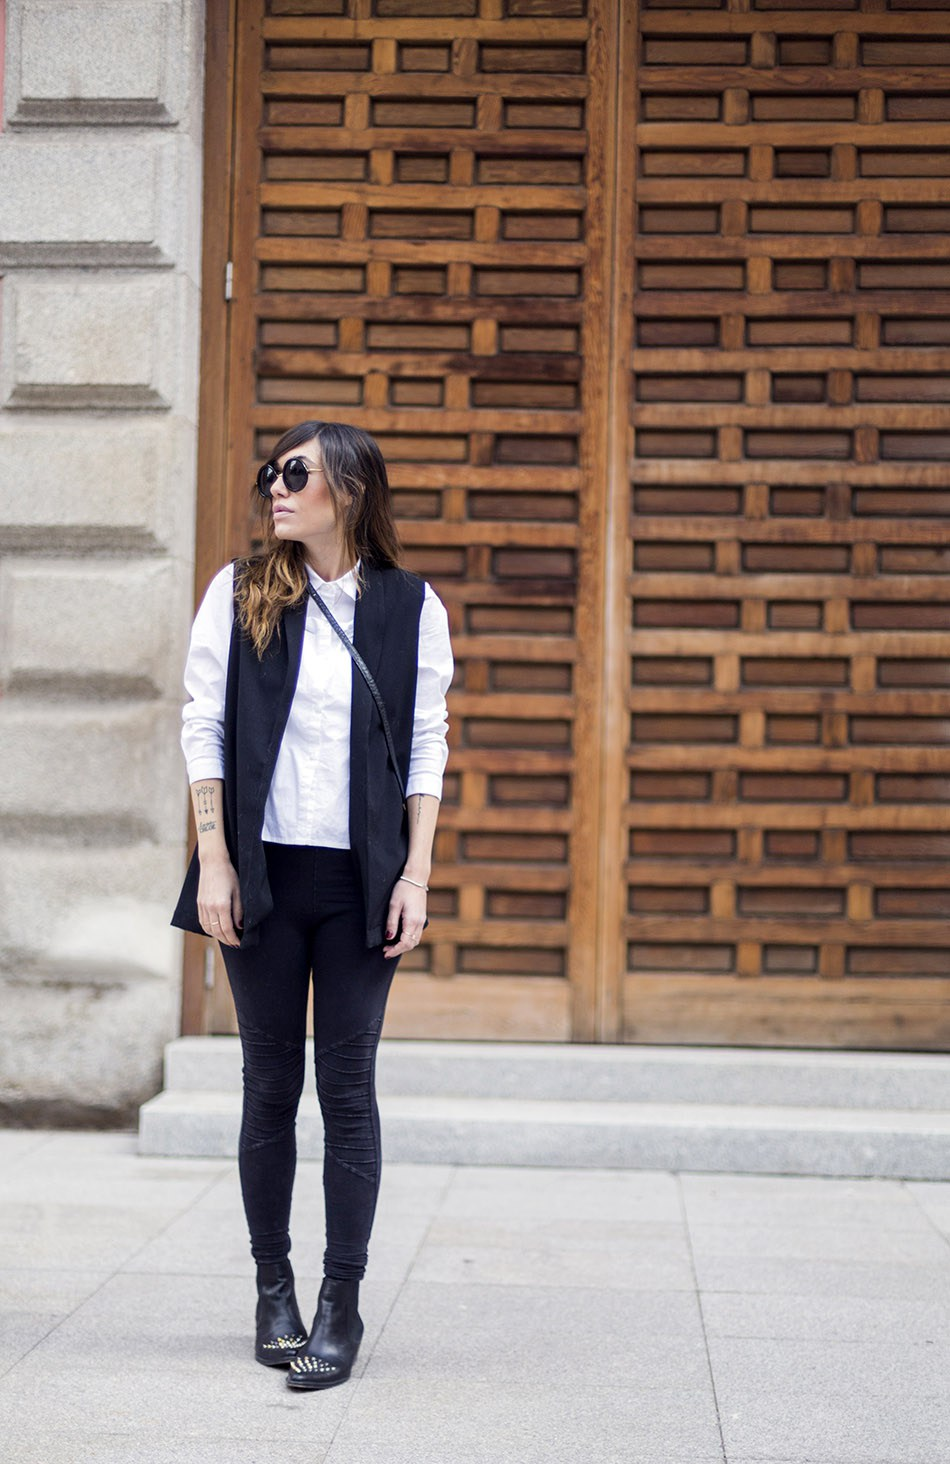 street style march outfits review bárbara crespo 05